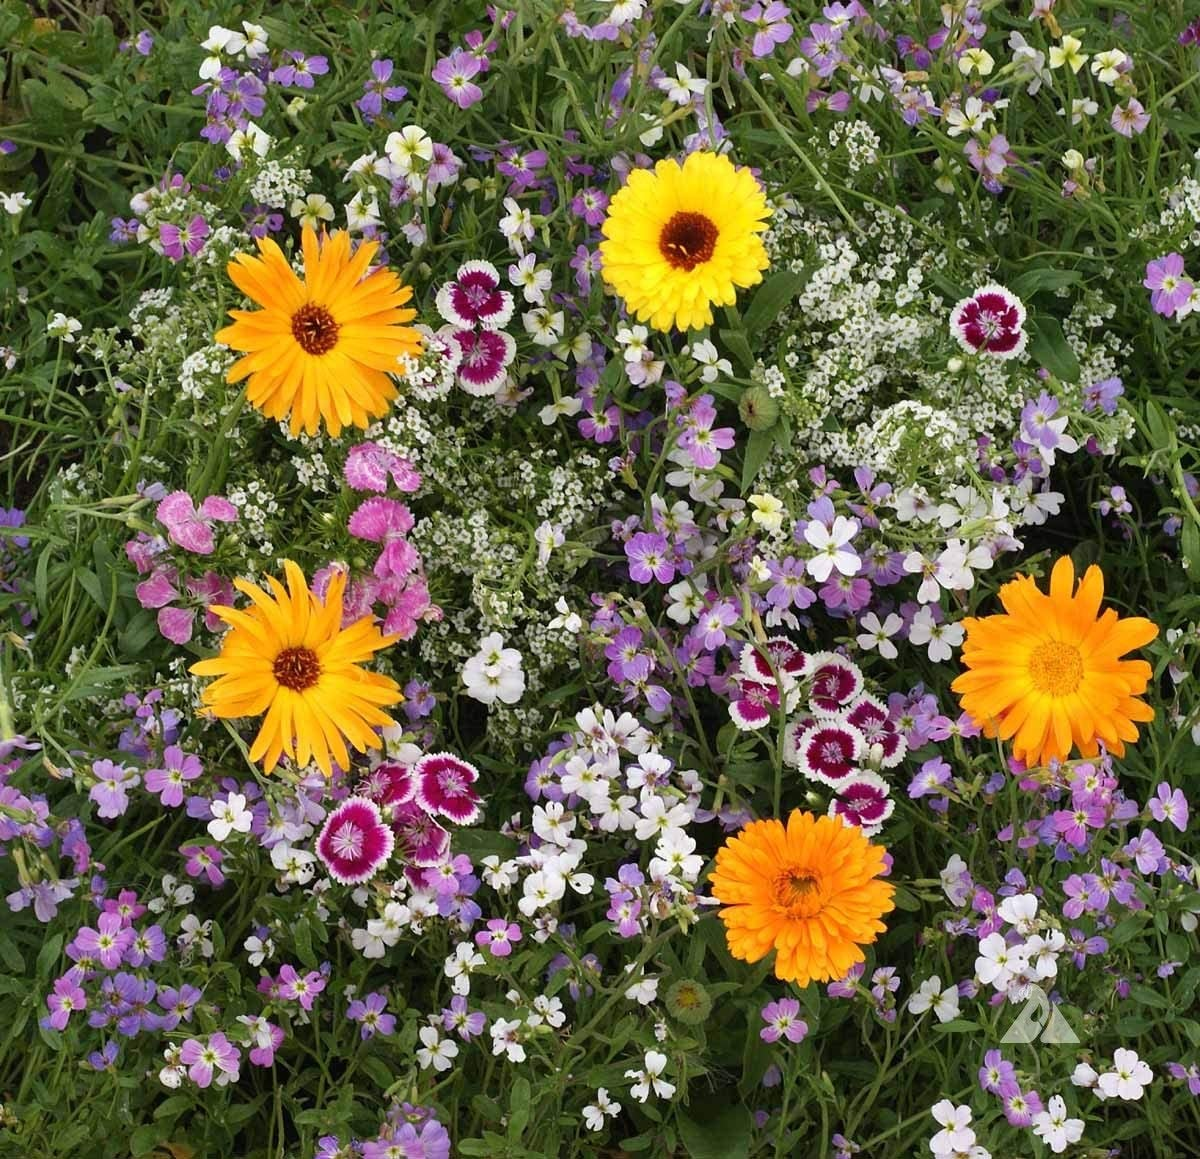 David's Garden Seeds Wildflower Fragrant Mixture SL8399 (Multi) About 500 Non-GMO, Open Pollinated Seeds